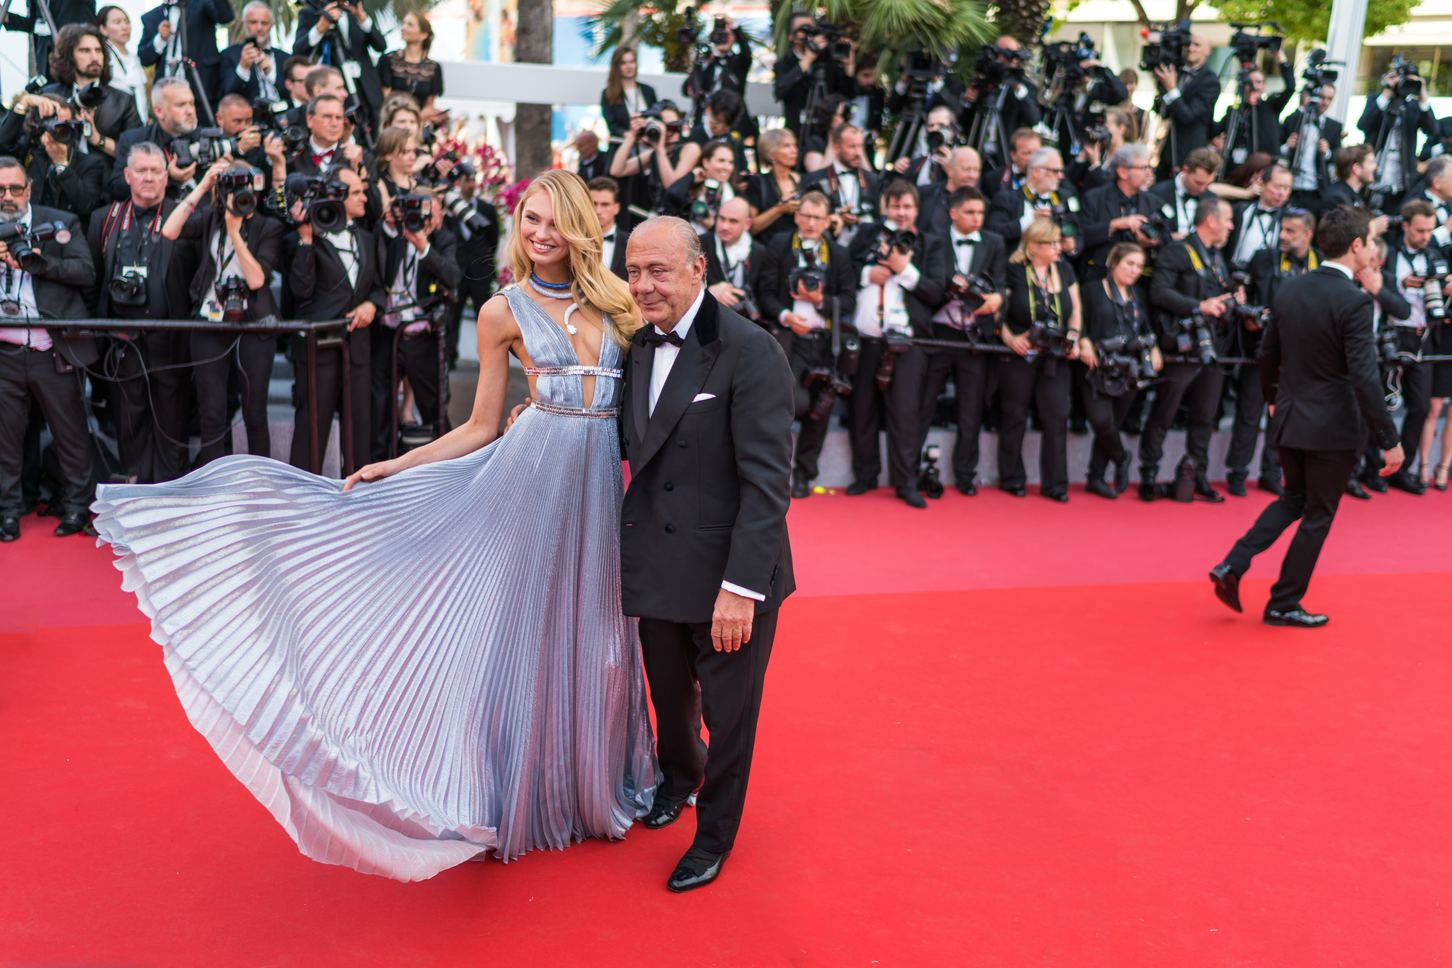 Cannes Film Festival red carpet